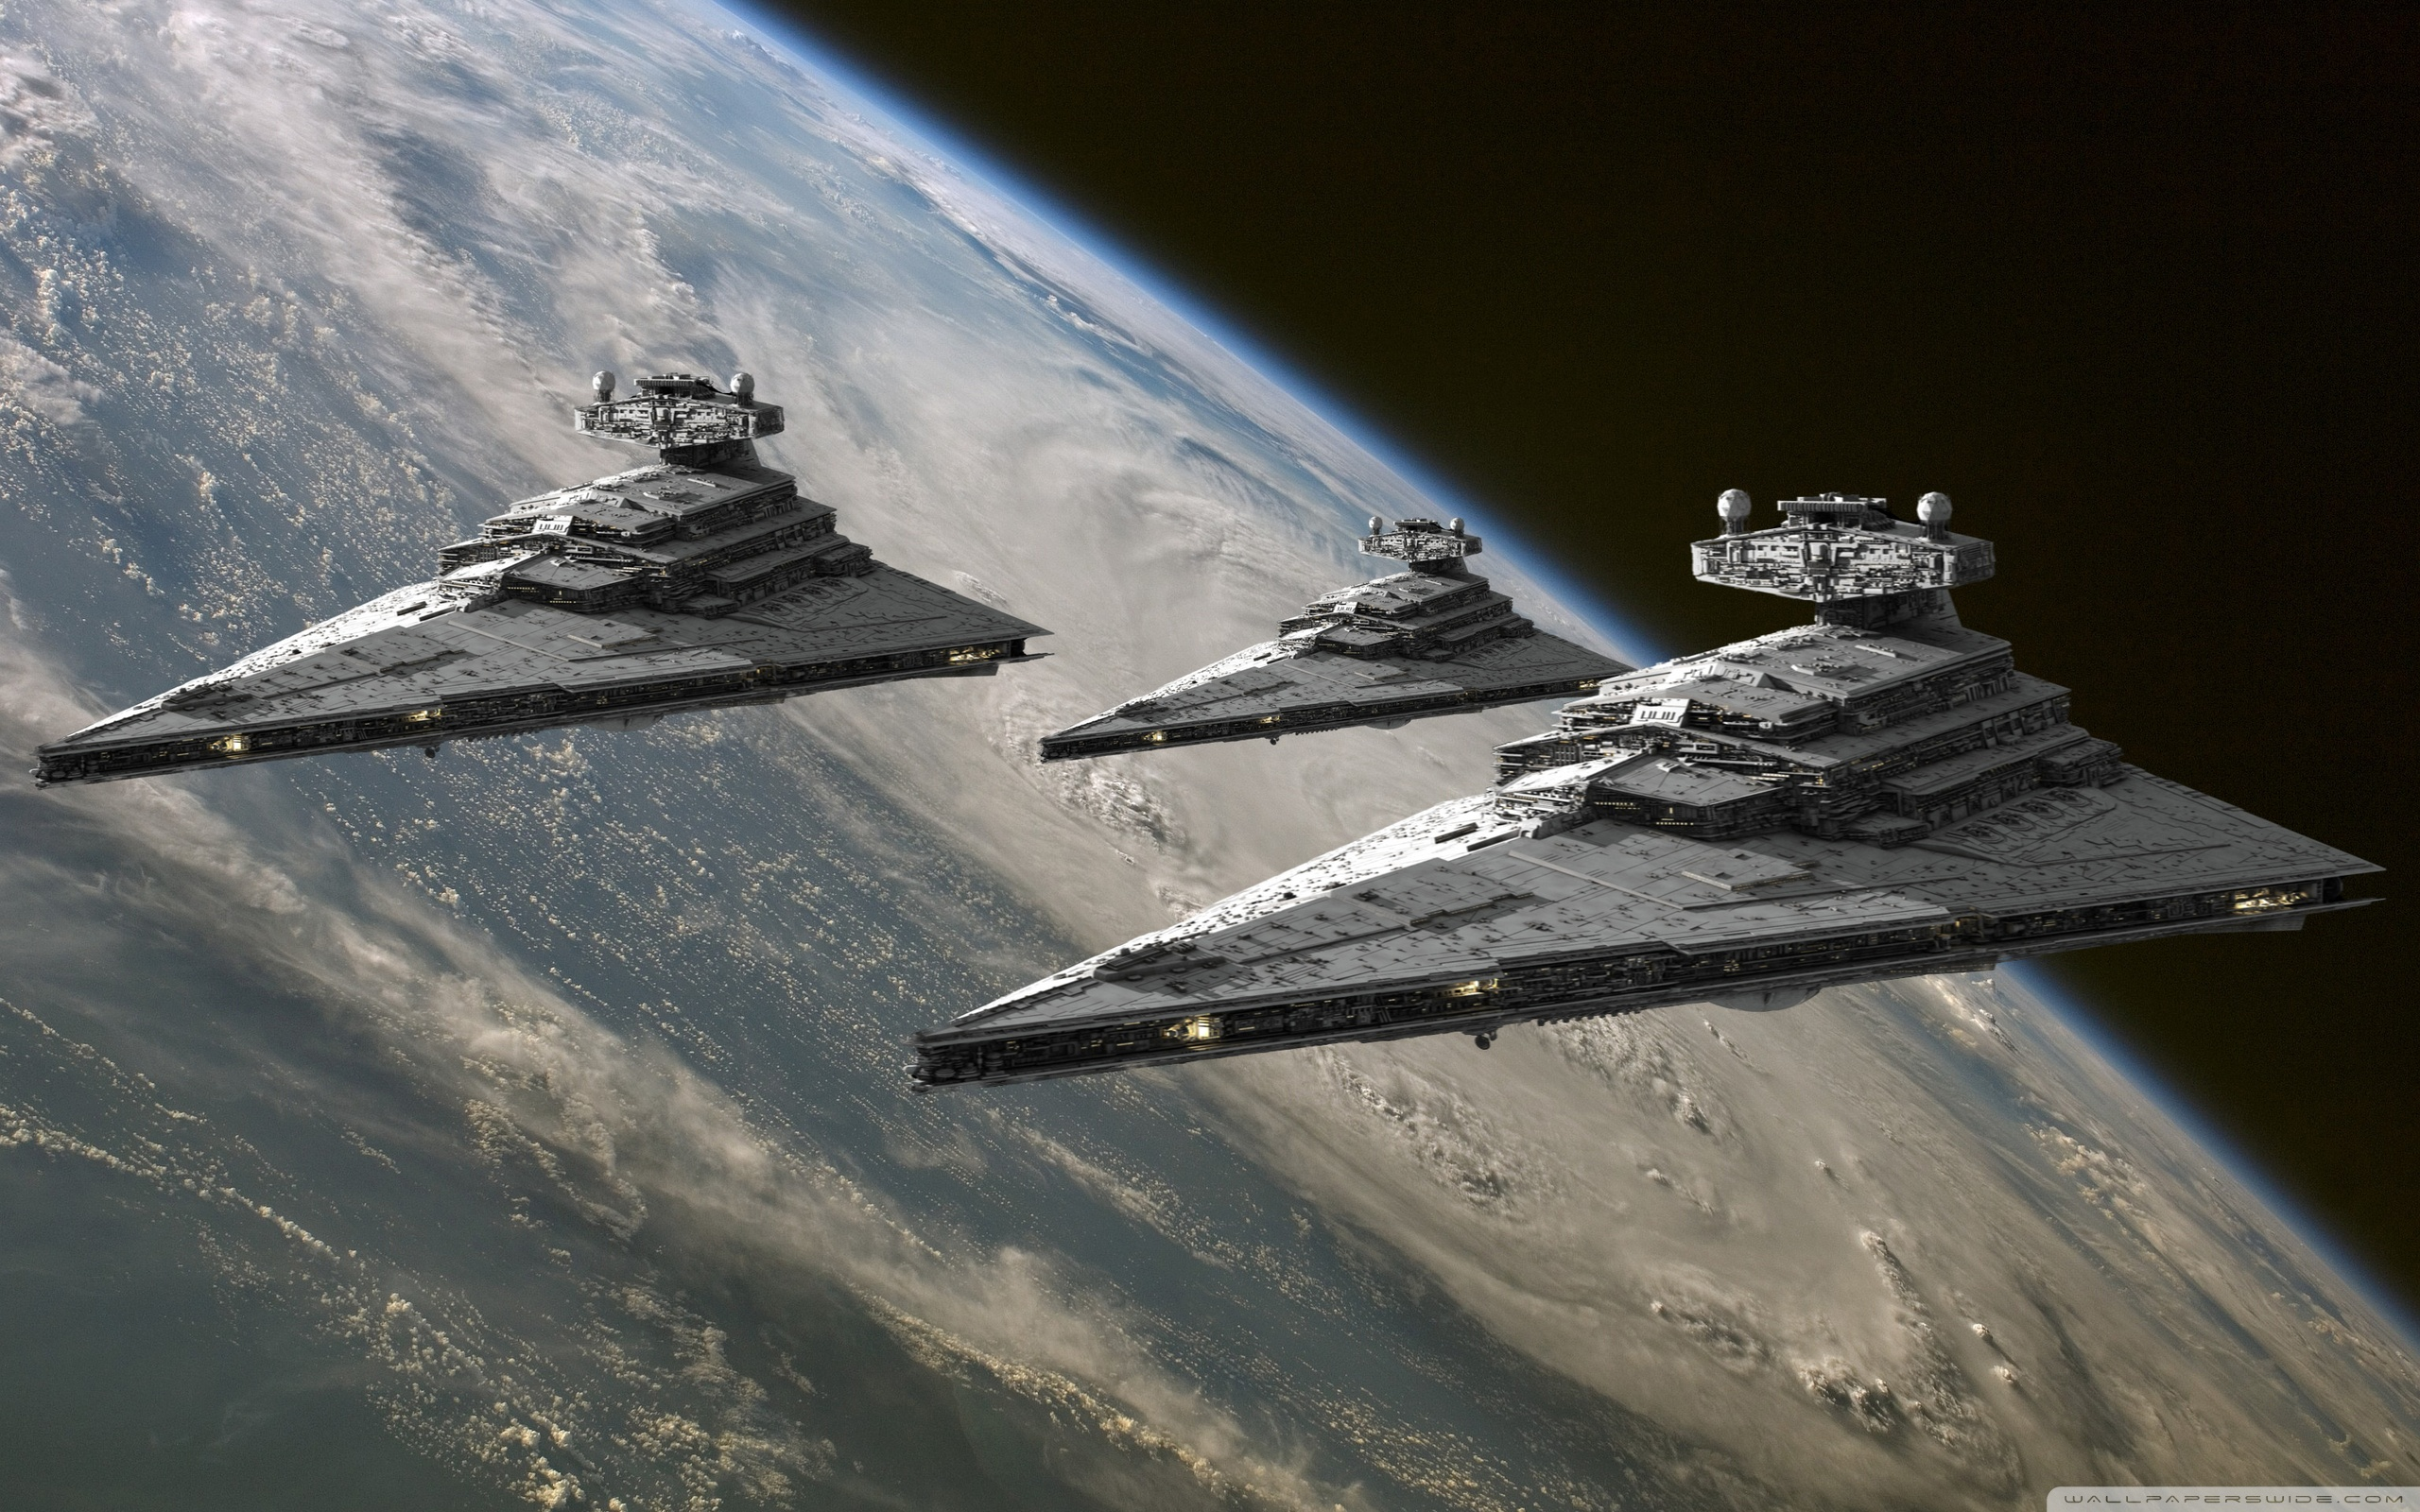 Star Wars Ships Wallpaper